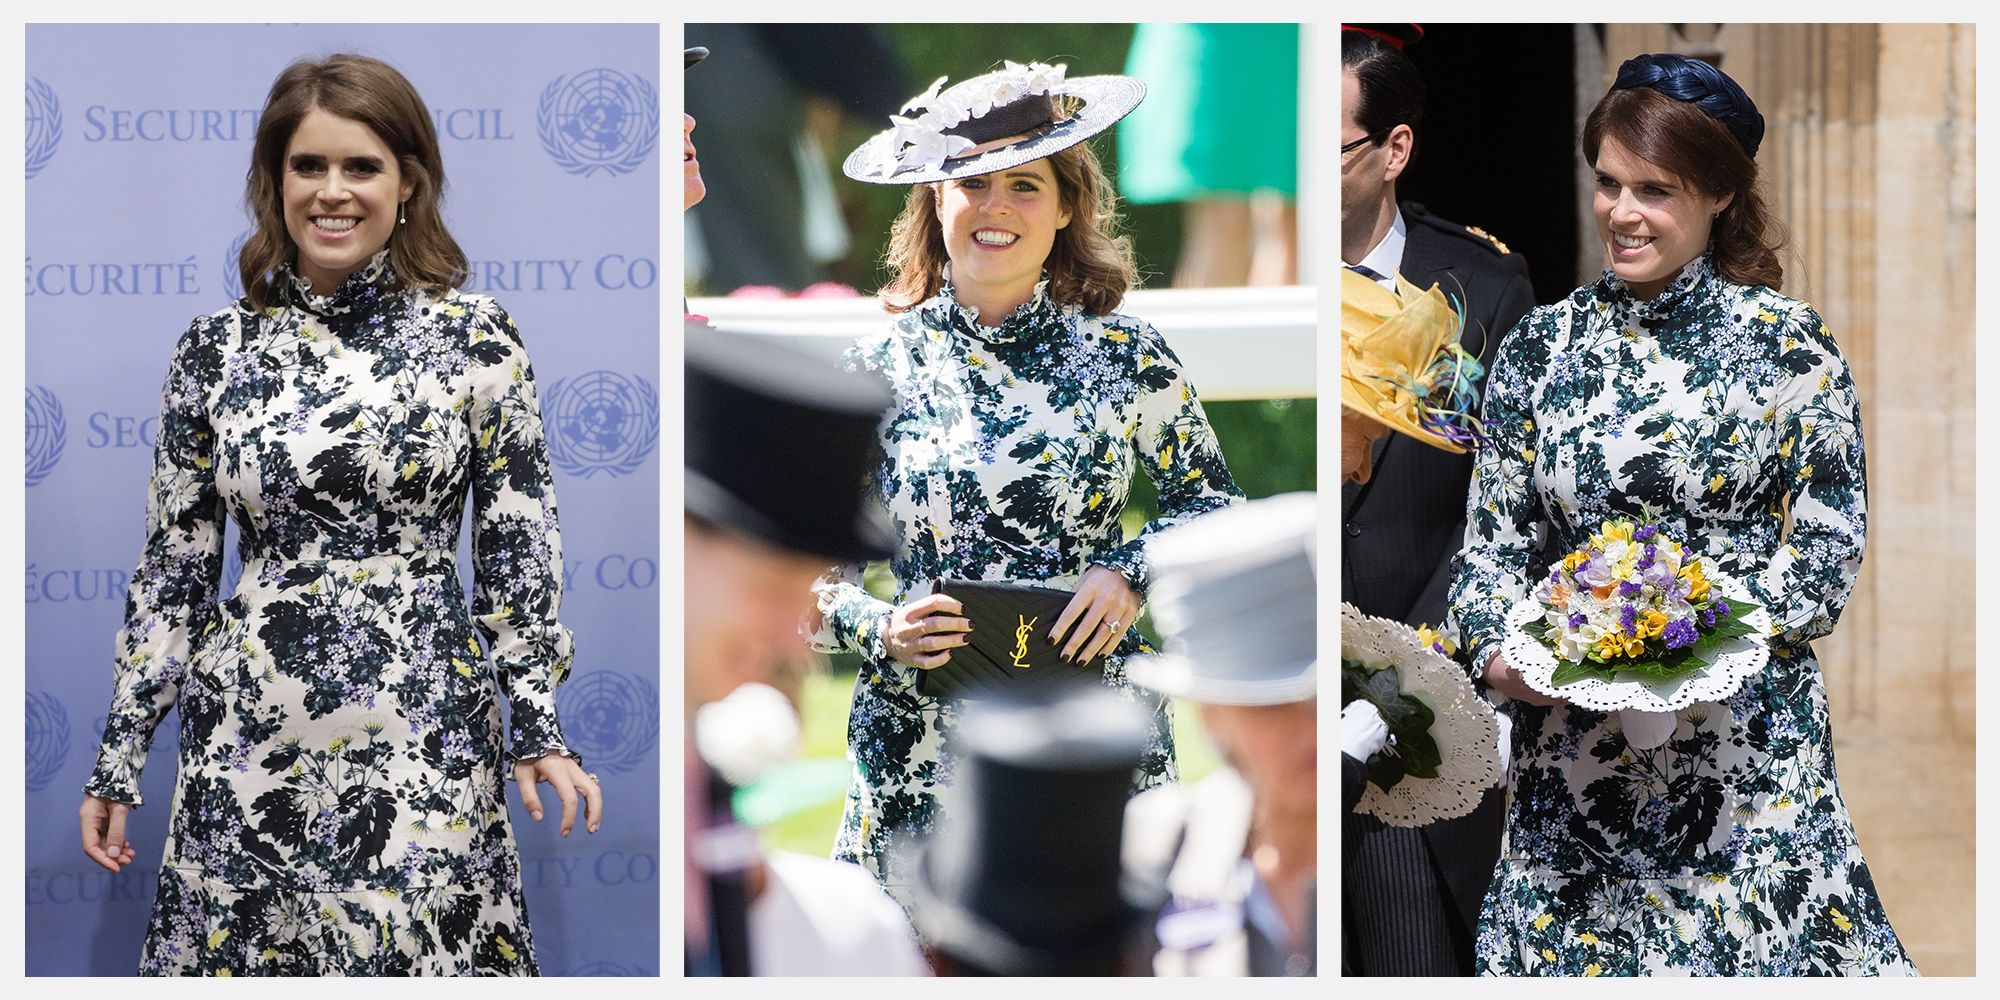 Princess Eugenie at the UN (left) Royal Ascot (center) and Maundy Thursday (right).